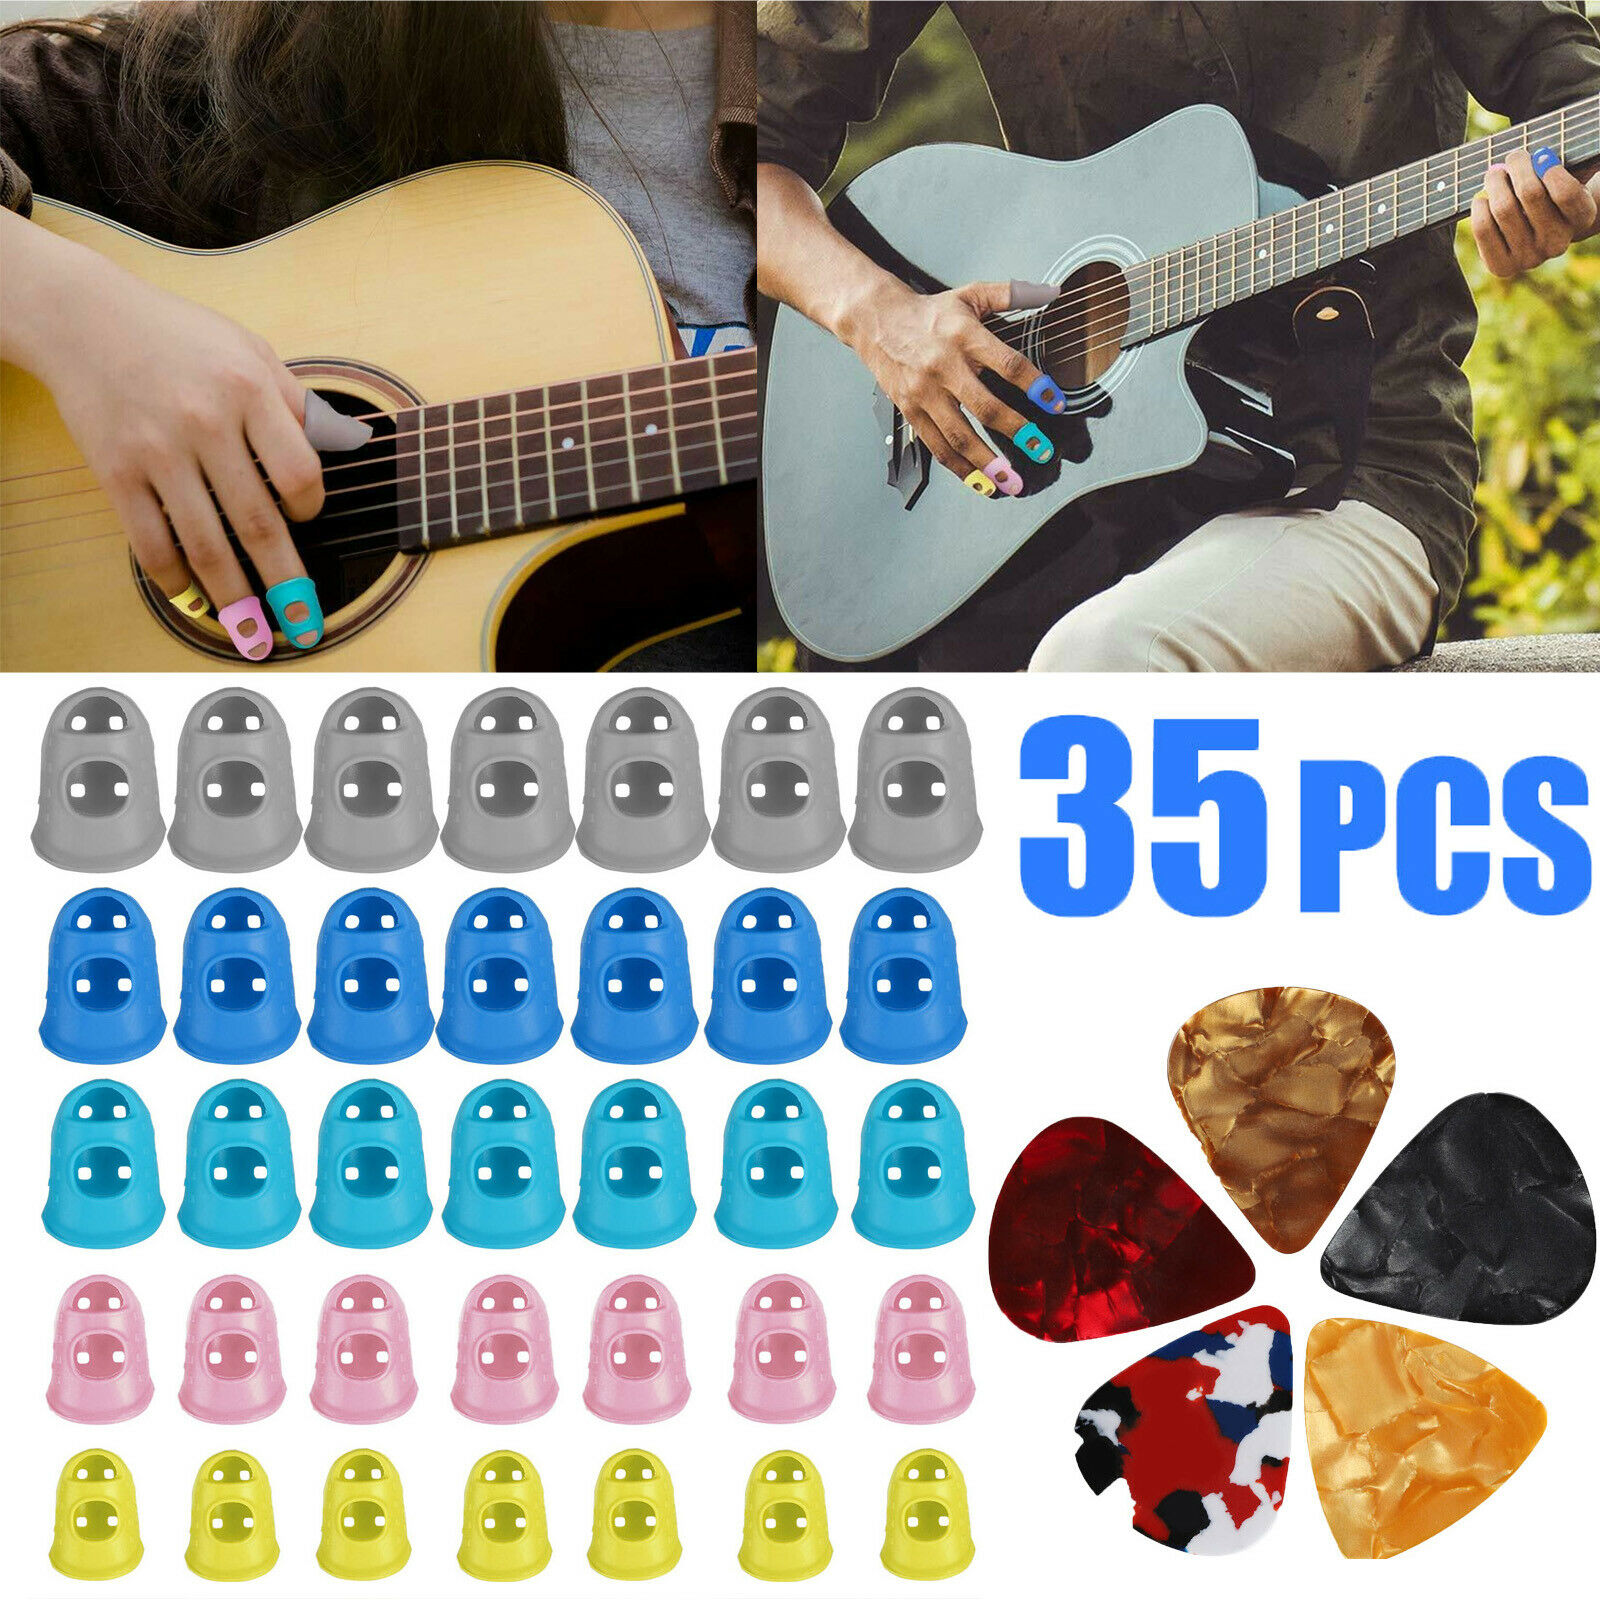 35-pcs-guitar-silicone-finger-protector-fingertip-covers-caps5-guitar-picks-new